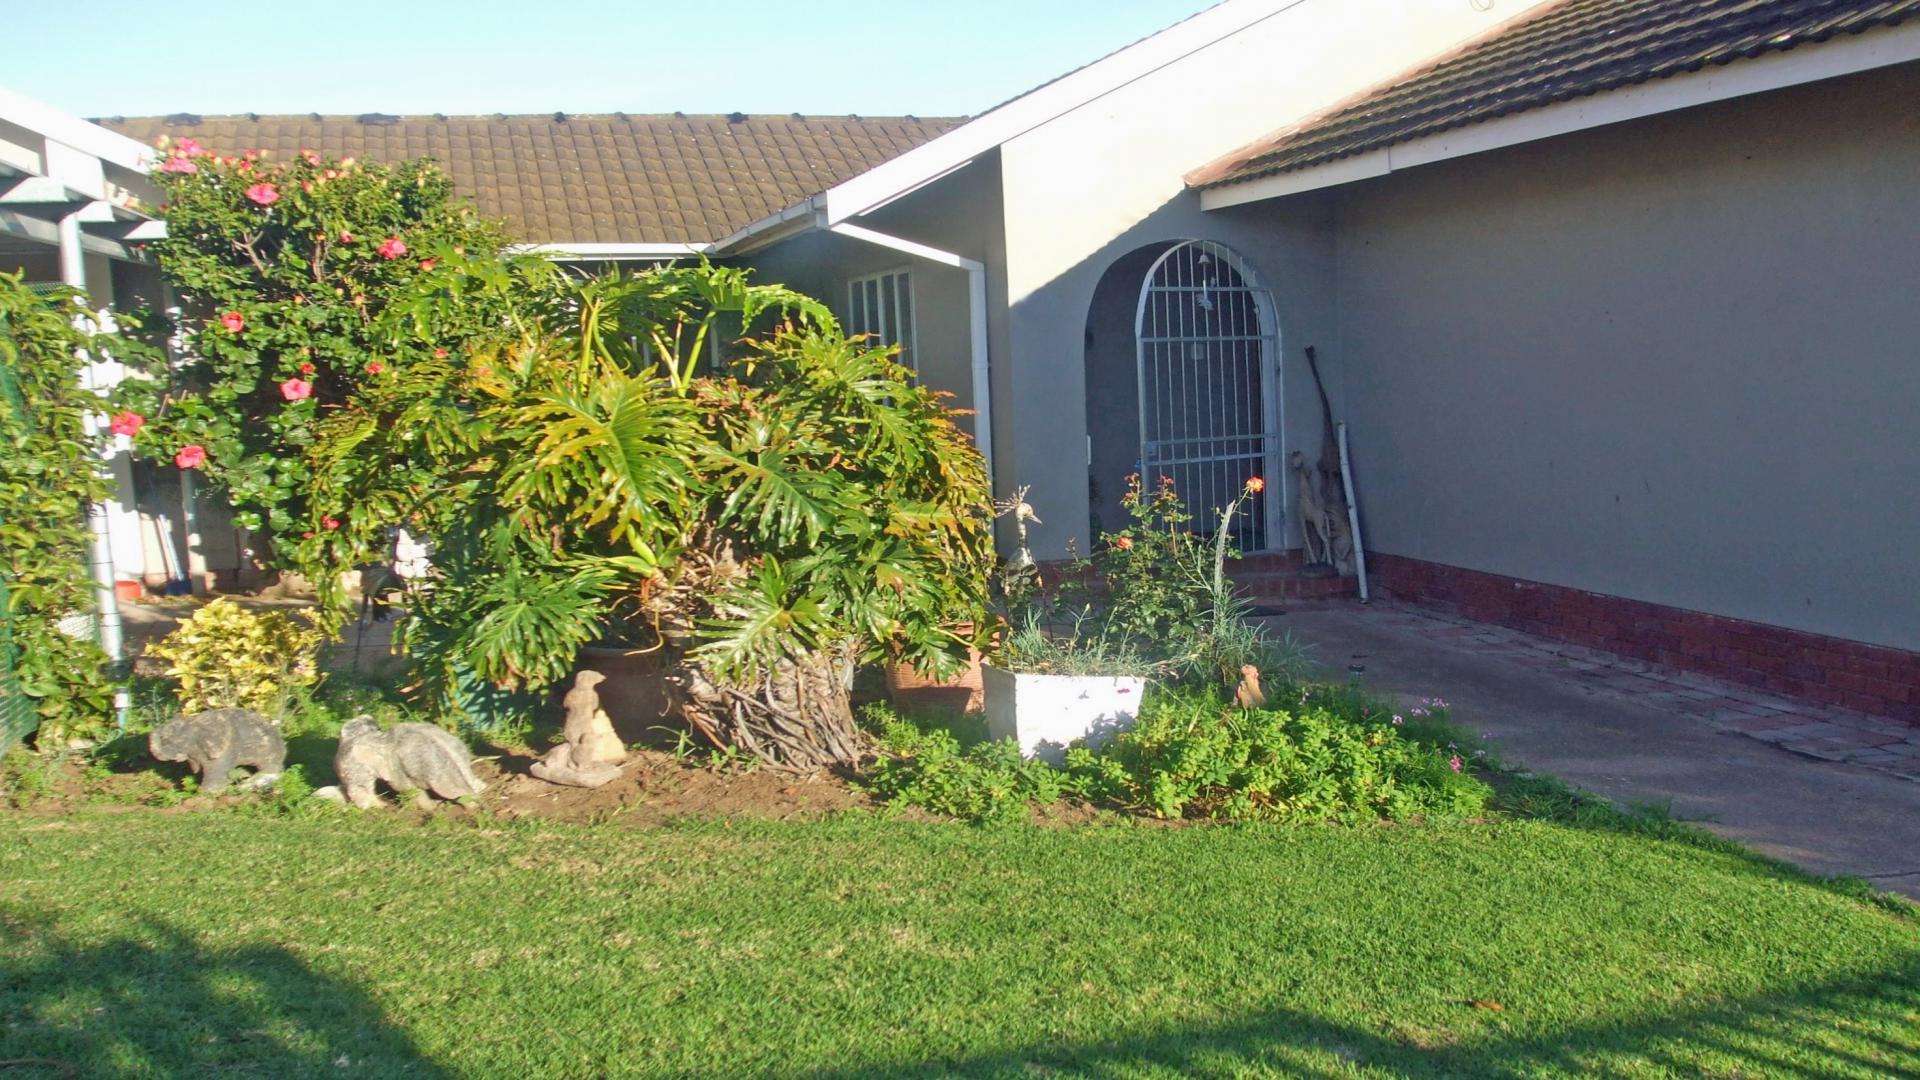 4 Bedroom House For Sale For Sale In Vredenburg Private Sale MR144801 MyRoof